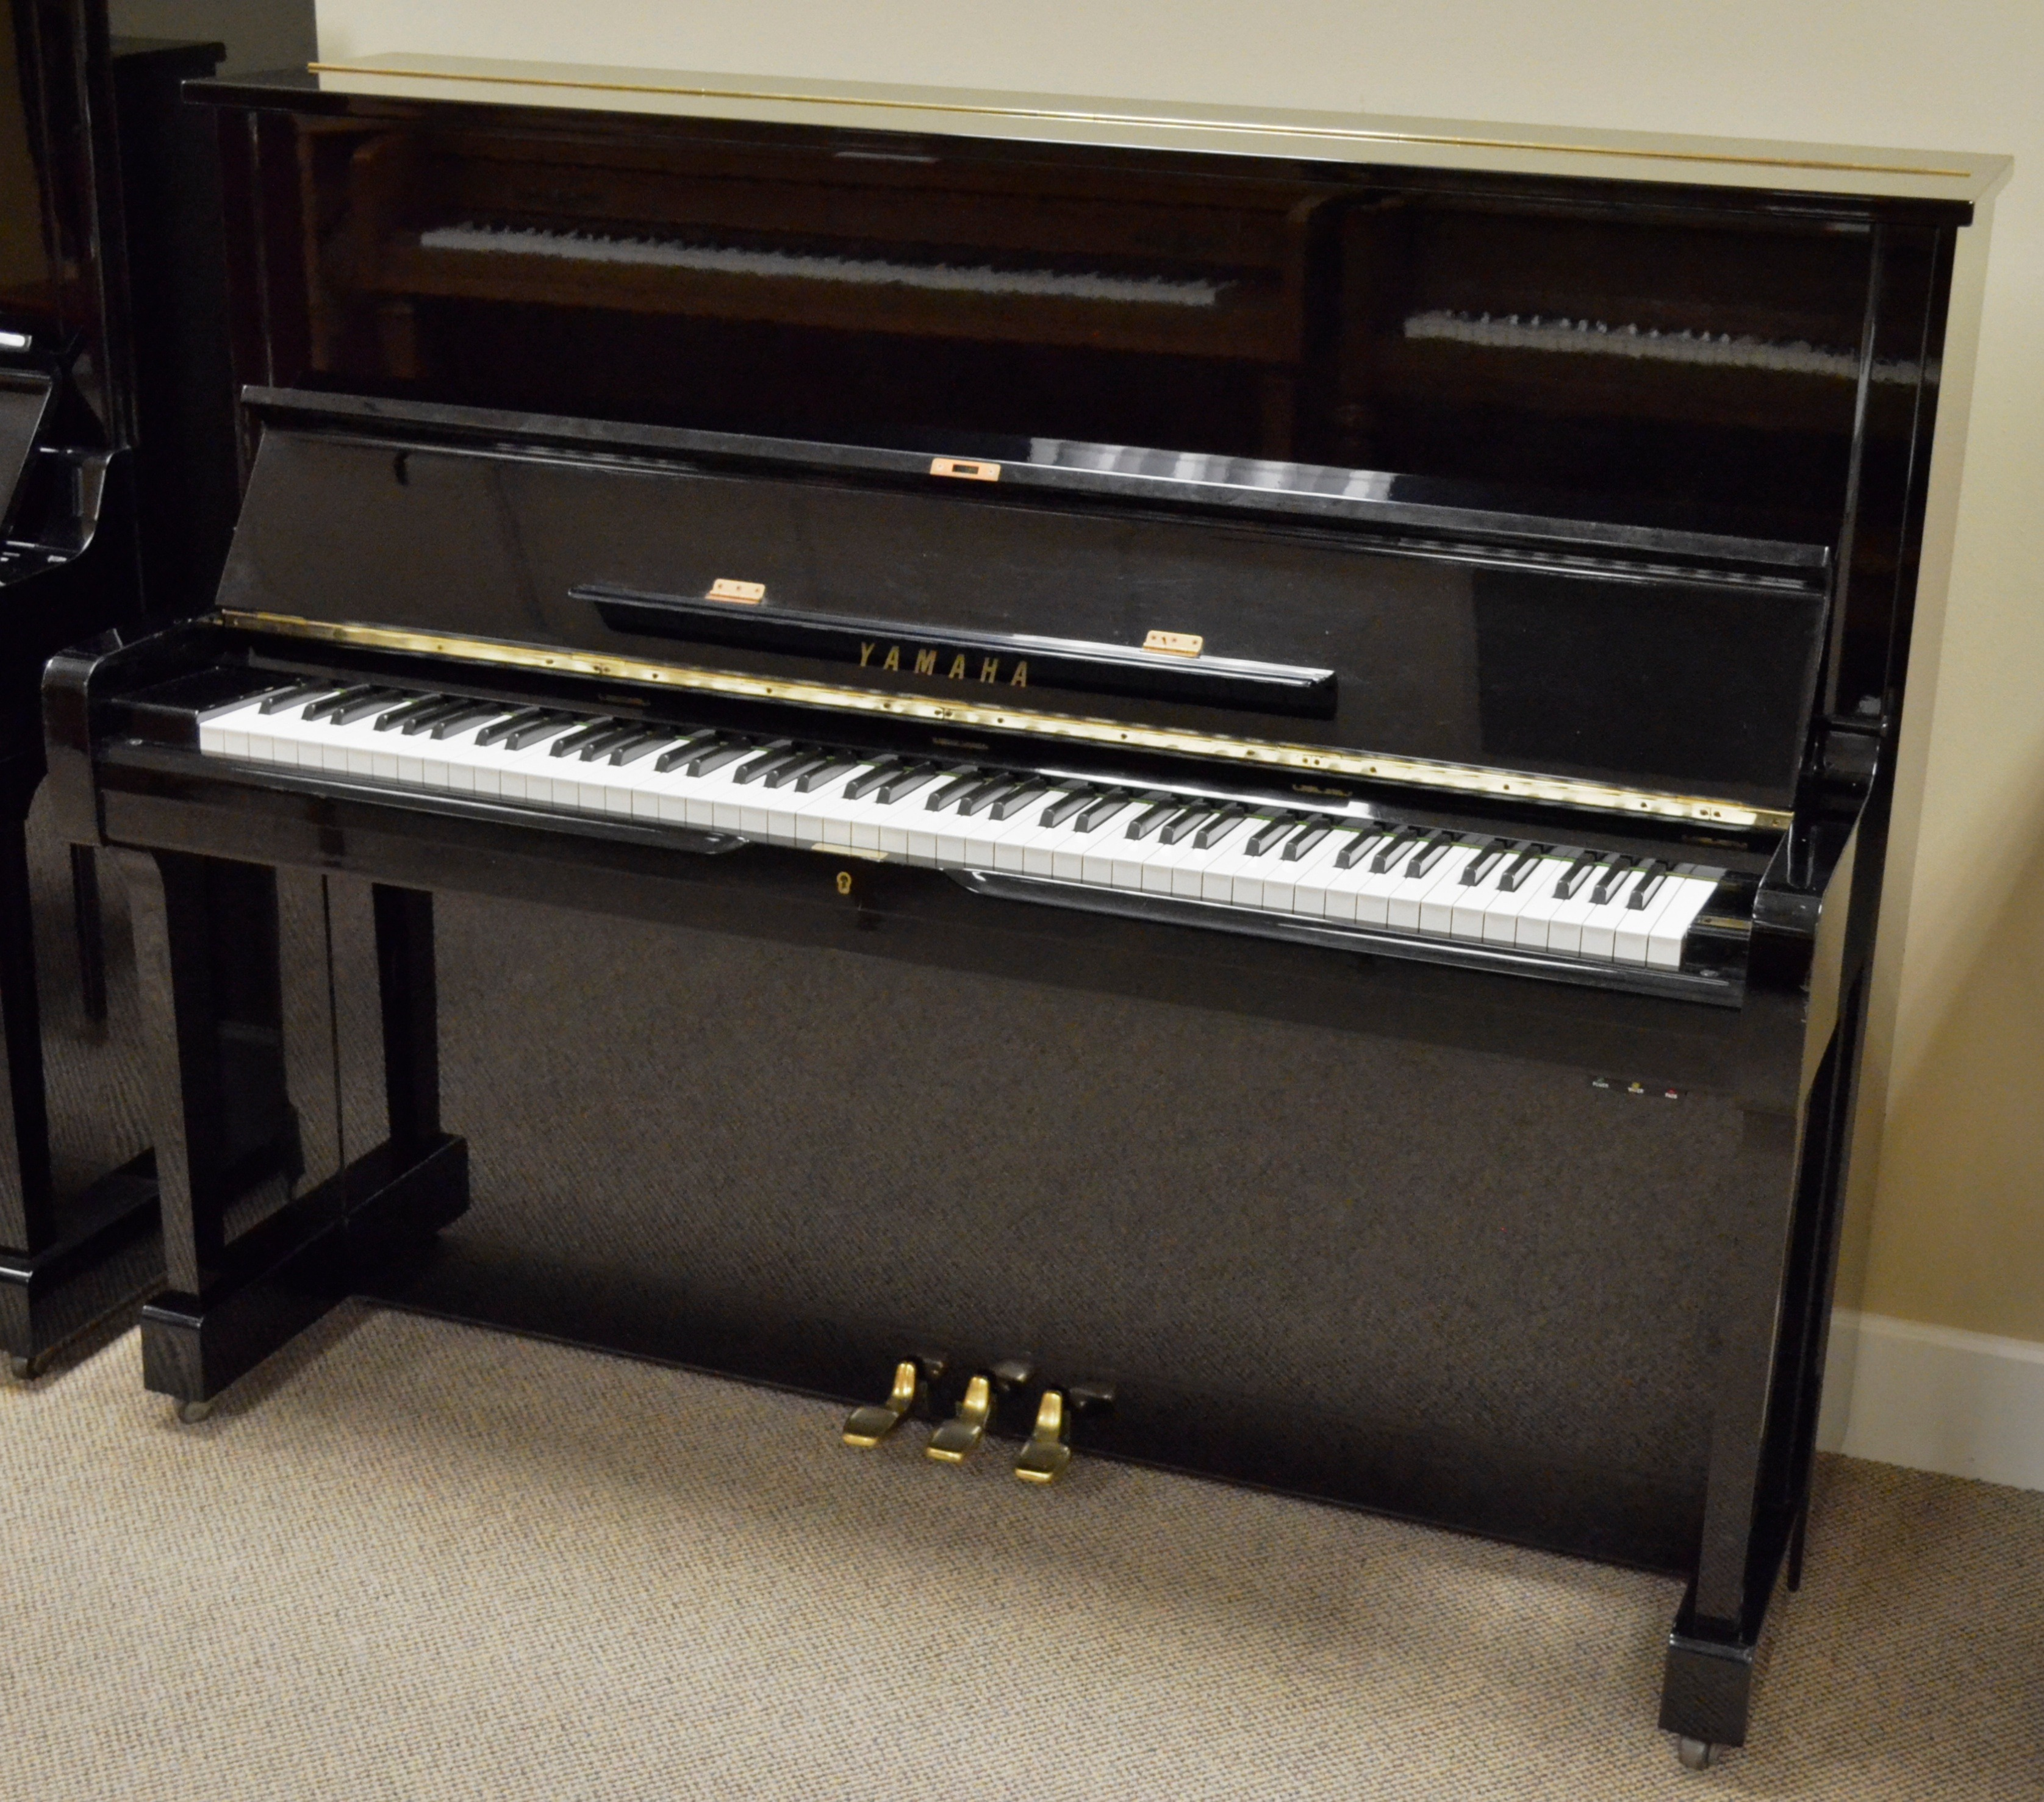 New arrival yamaha u1 professional upright pianonotes for Yamaha u1 professional upright piano